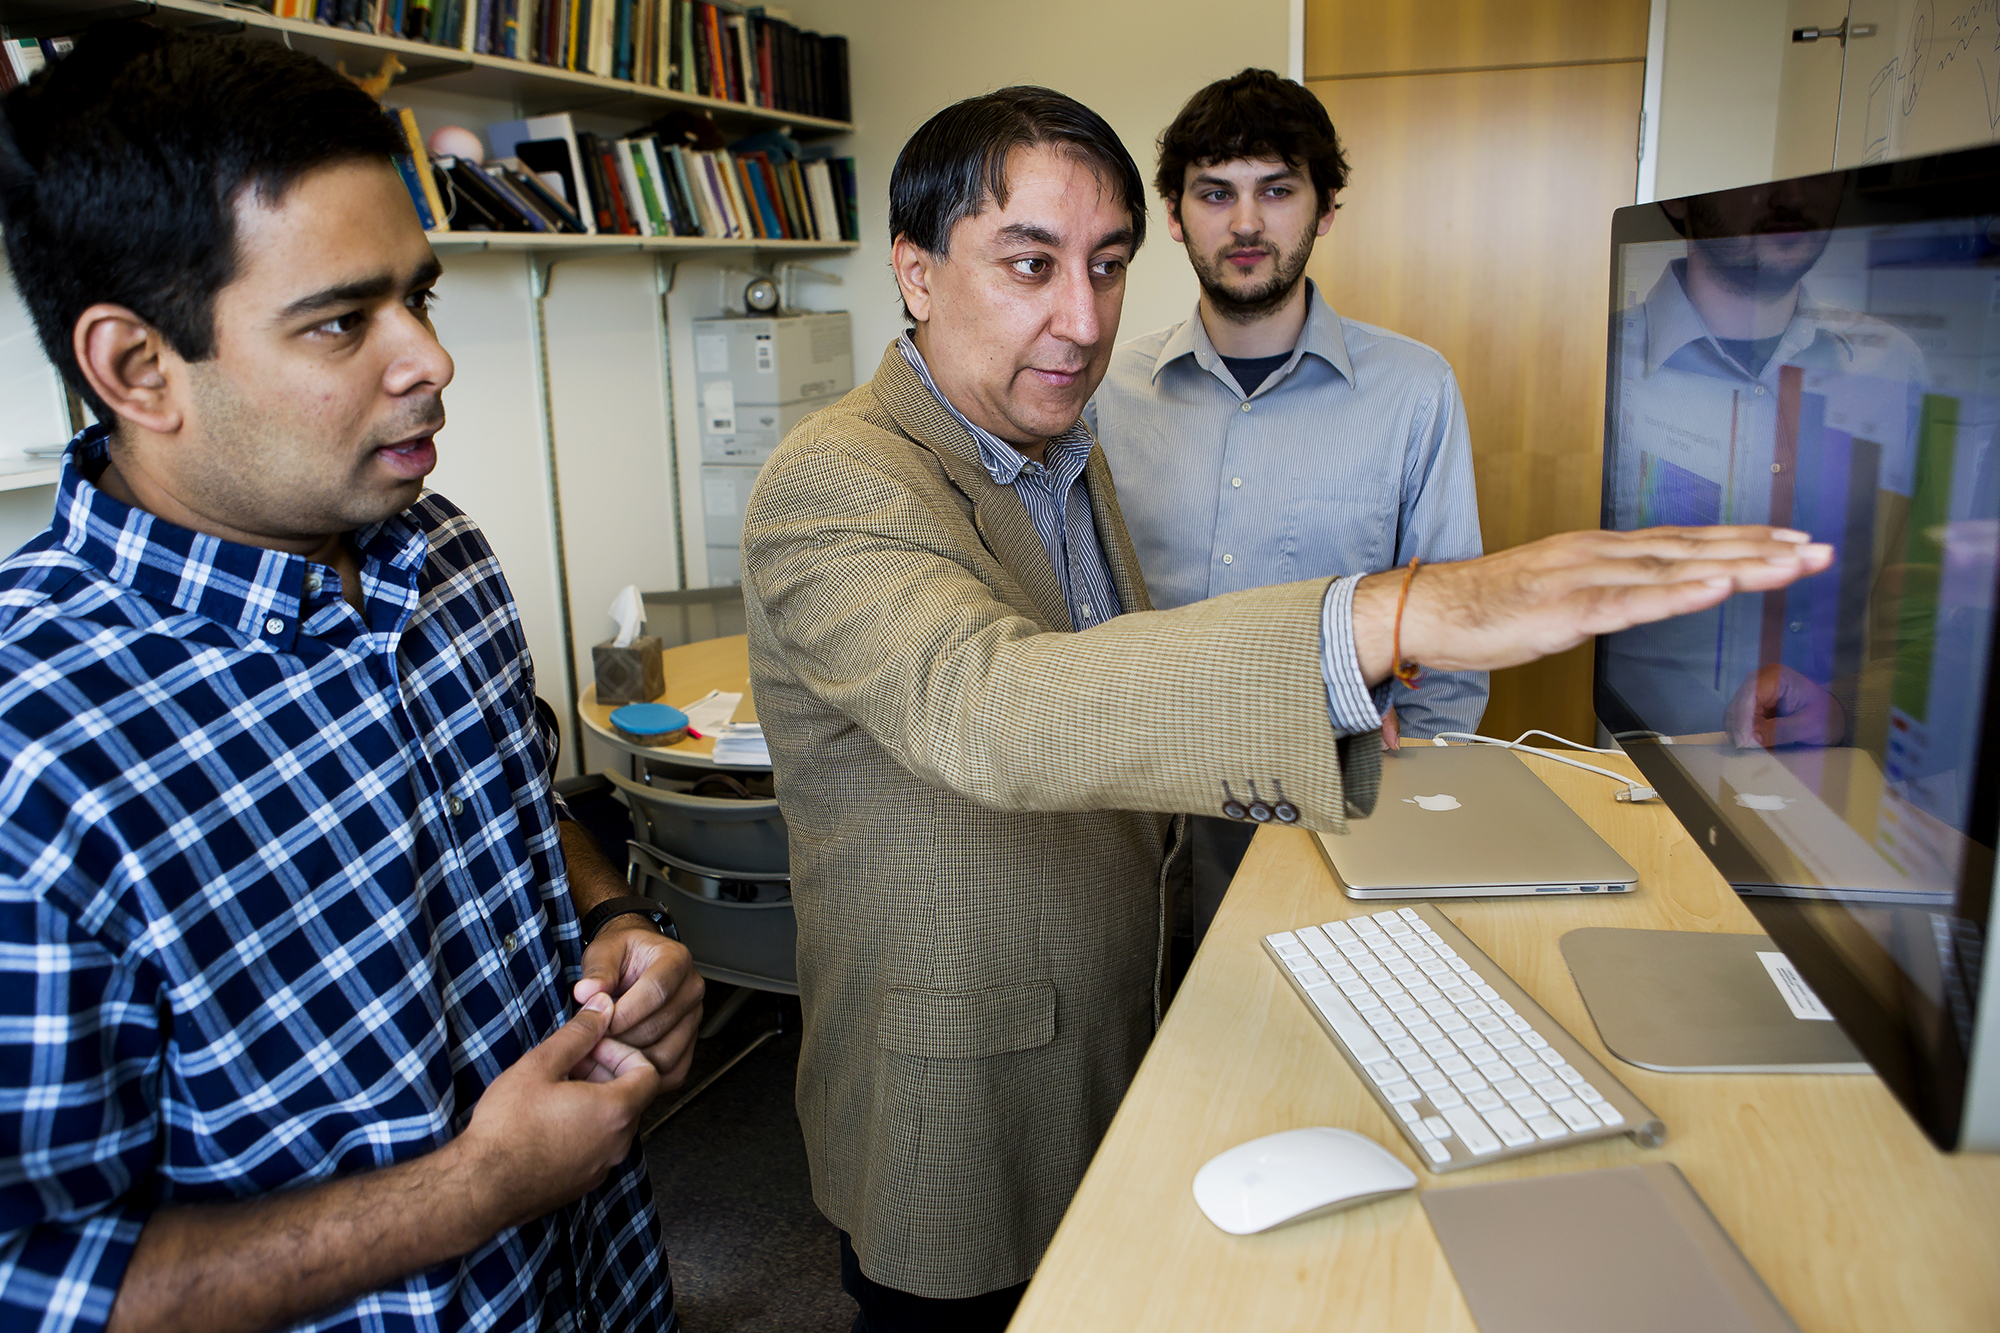 Satinder Baveja (center), University of Michigan professor of computer science and engineering, is leading a project with IBM to develop a conversational cognitive computing system that would initially serve as an automated advisor for a segment of undergrad students. Here, he discusses the project with Ananda Narayan (left) and Charles Welch (right), doctoral students and researchers in Baveja's group. Image credit: Joseph Xu